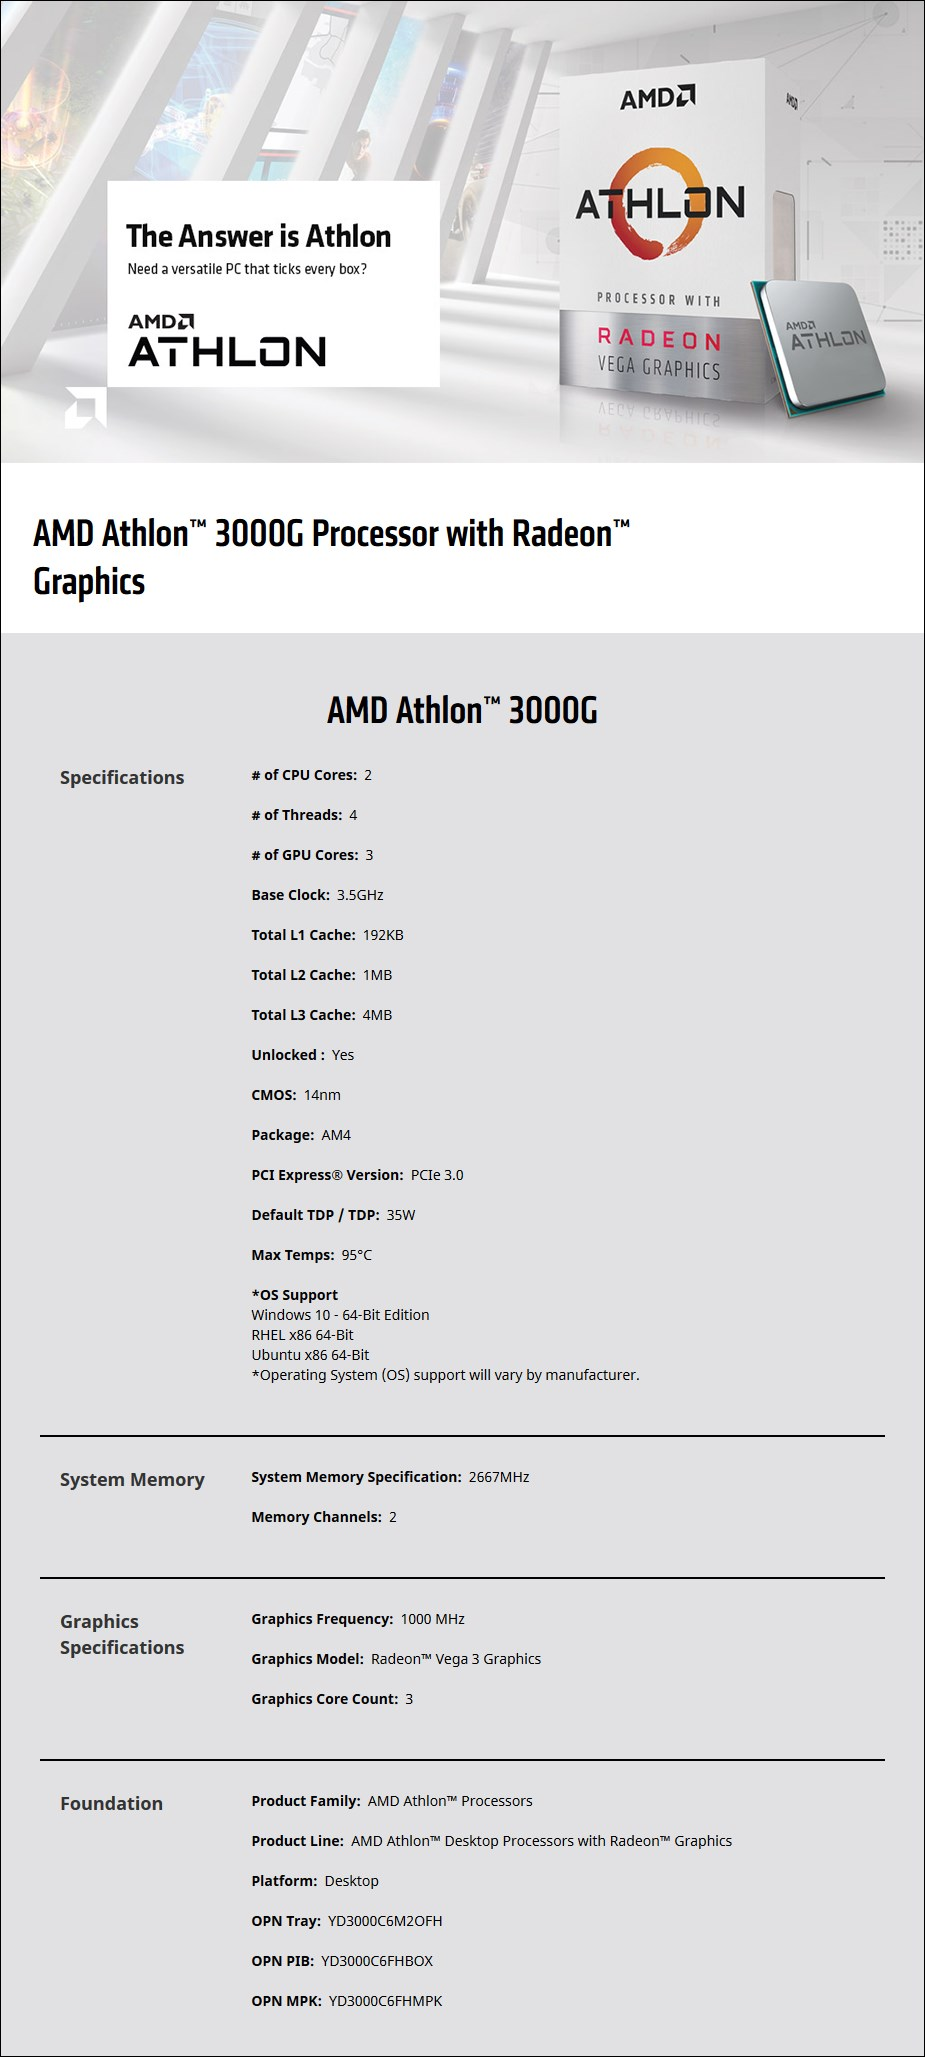 amd-athlon-3000g-2core-am4-35-ghz-cpu-processor-with-radeon-vega-3-graphics-ac29614-1.jpg